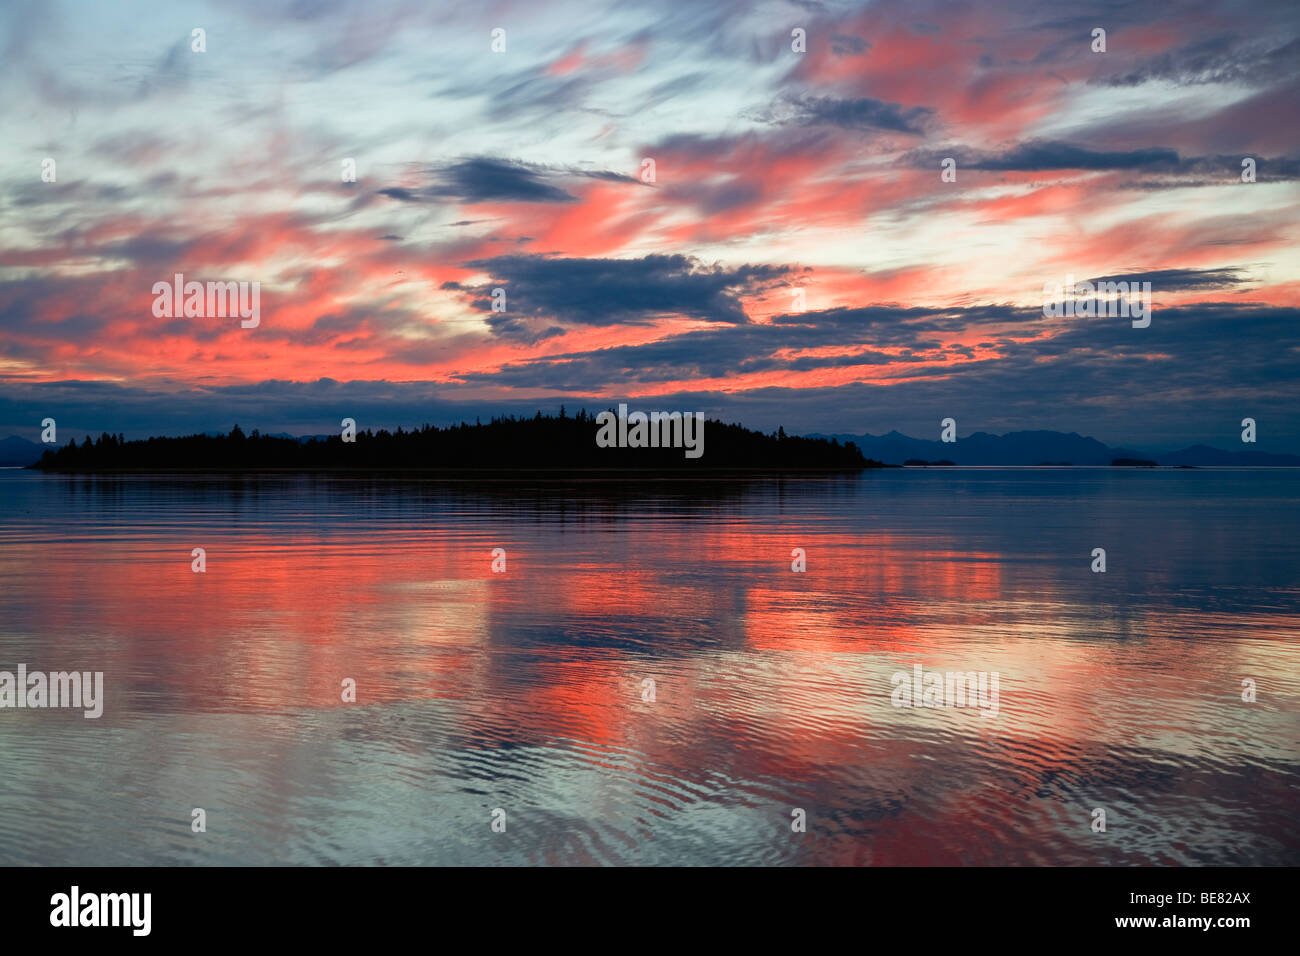 The sea and coastline in the afterglow, Inside Passage, Southeast Alaska, USA - Stock Image